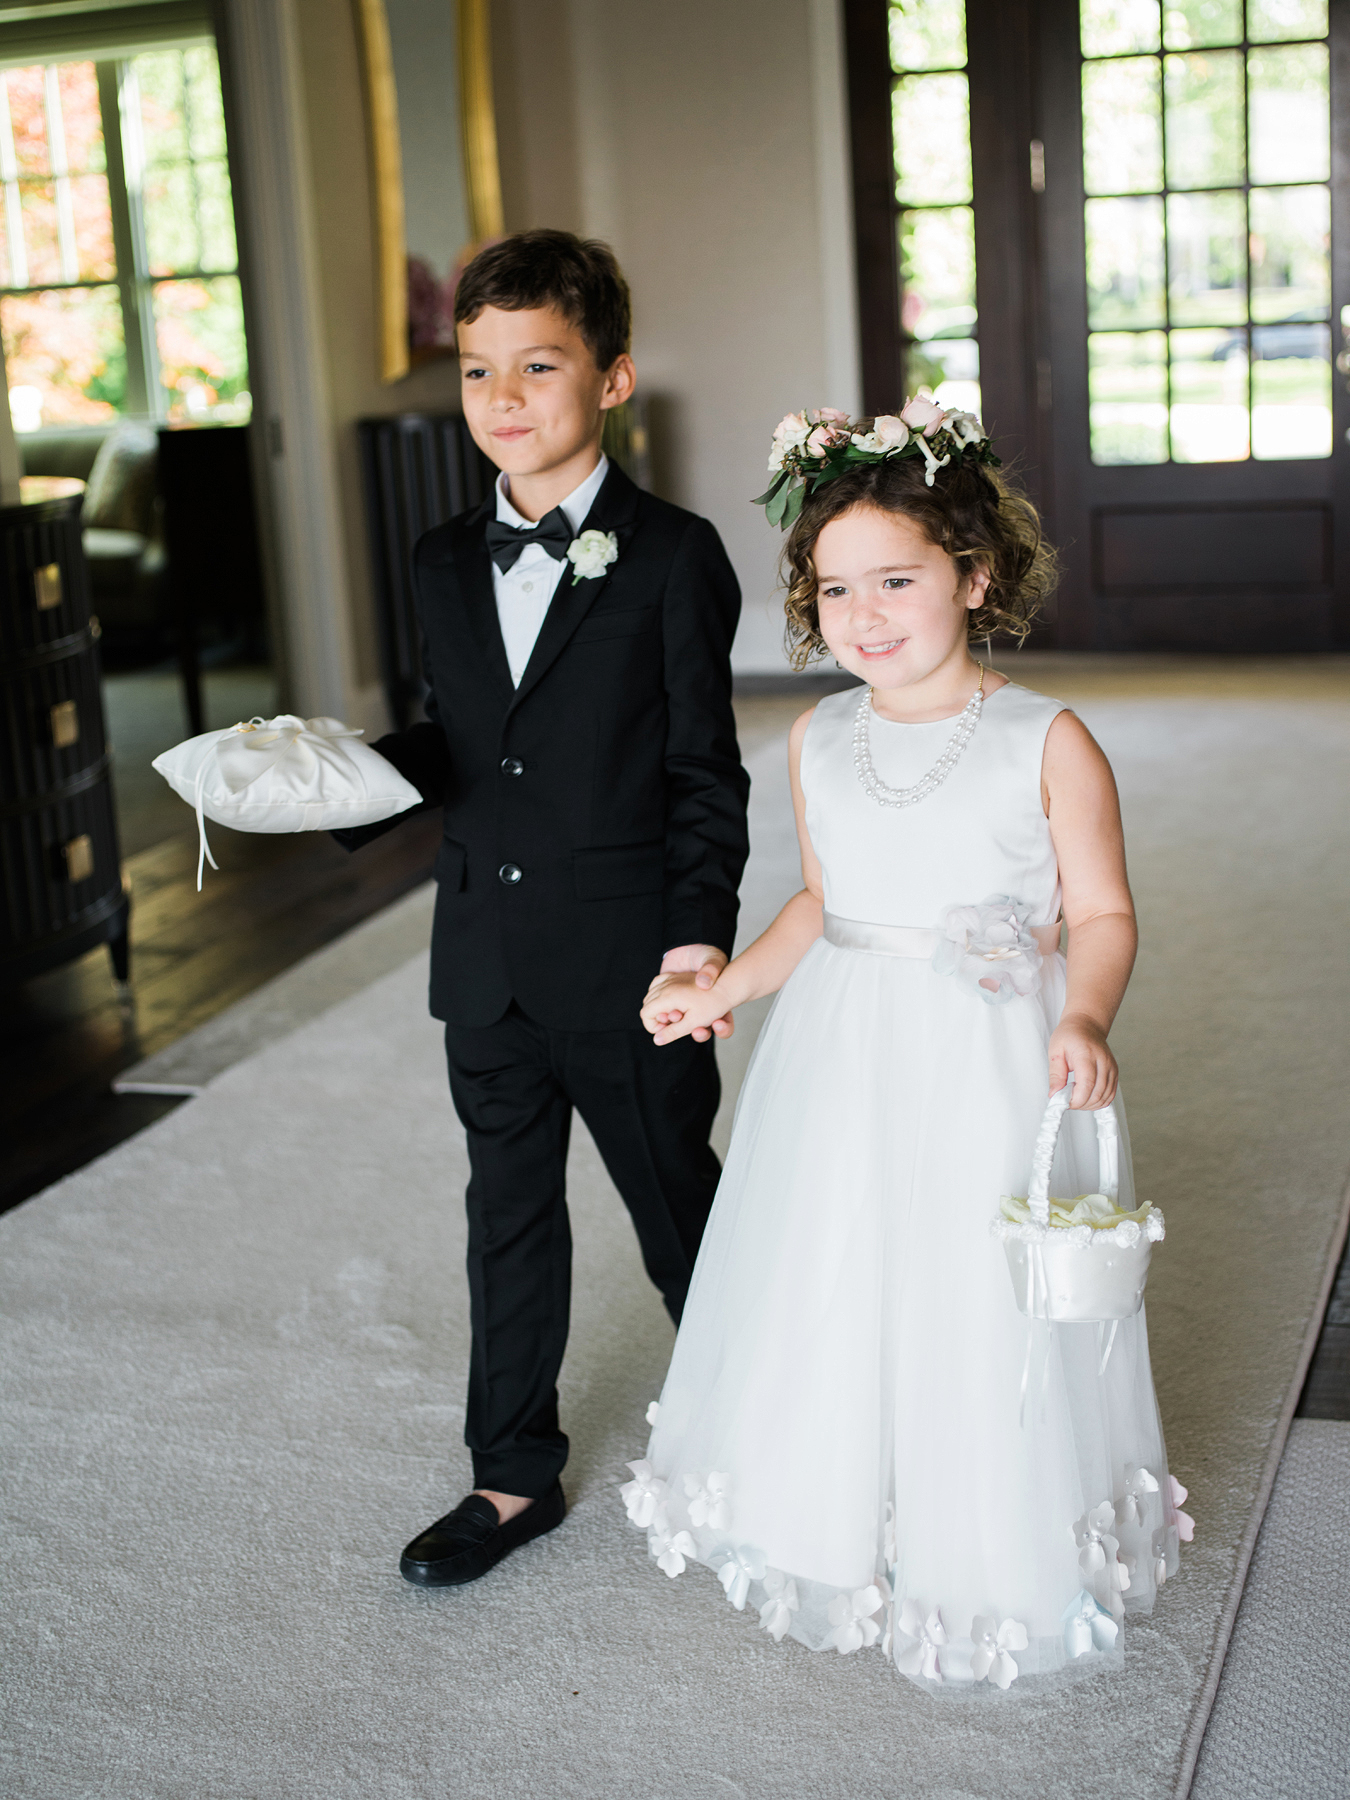 How Much Should the Couple Spend on a Gift for the Flower Girl or Ring Bearer?